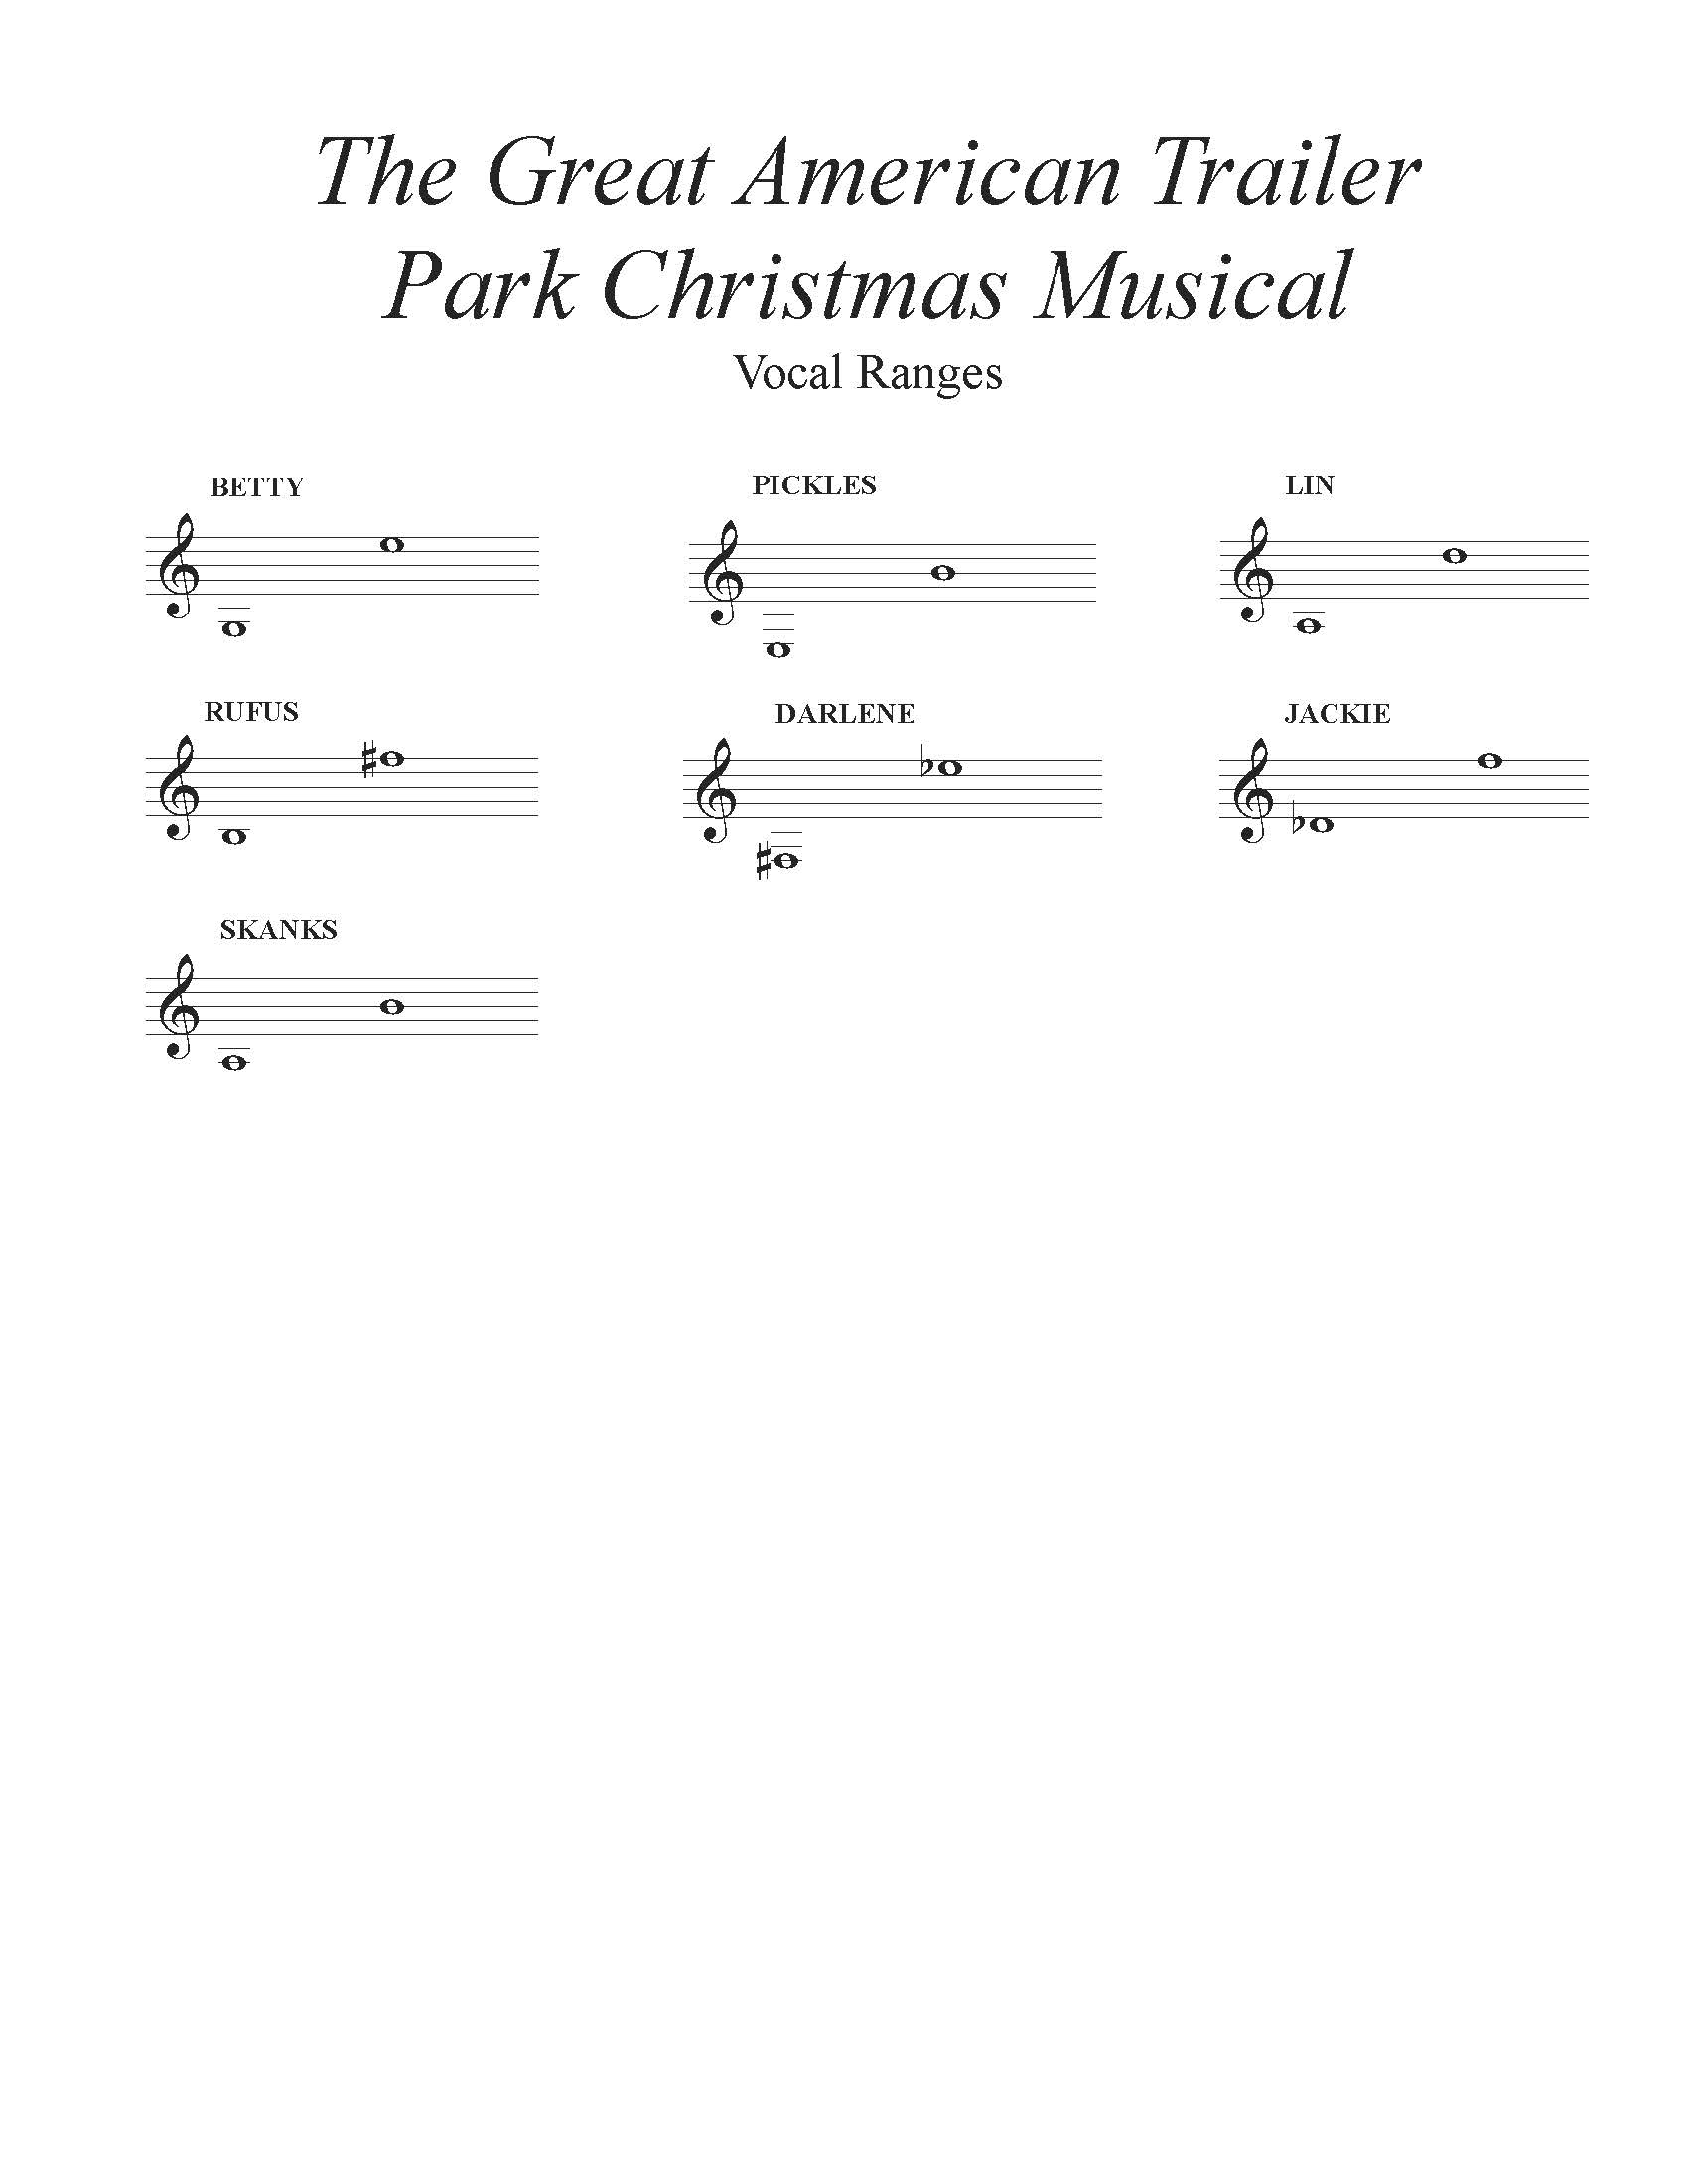 The Great American Trailer Park Christmas Musical Vocal Ranges